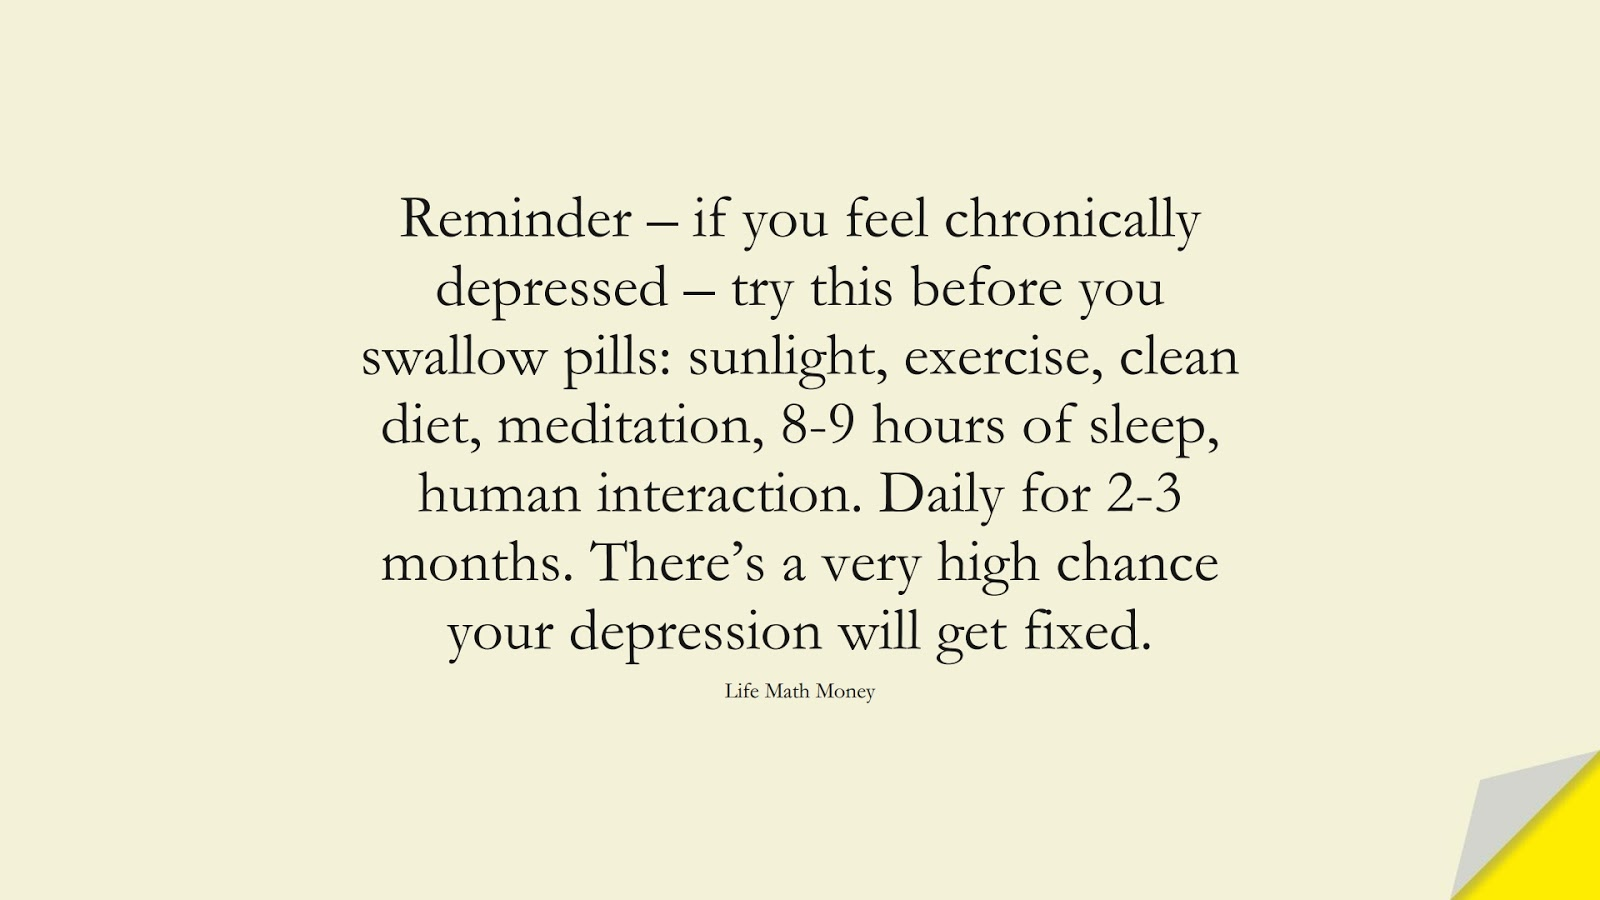 Reminder – if you feel chronically depressed – try this before you swallow pills: sunlight, exercise, clean diet, meditation, 8-9 hours of sleep, human interaction. Daily for 2-3 months. There's a very high chance your depression will get fixed. (Life Math Money);  #DepressionQuotes